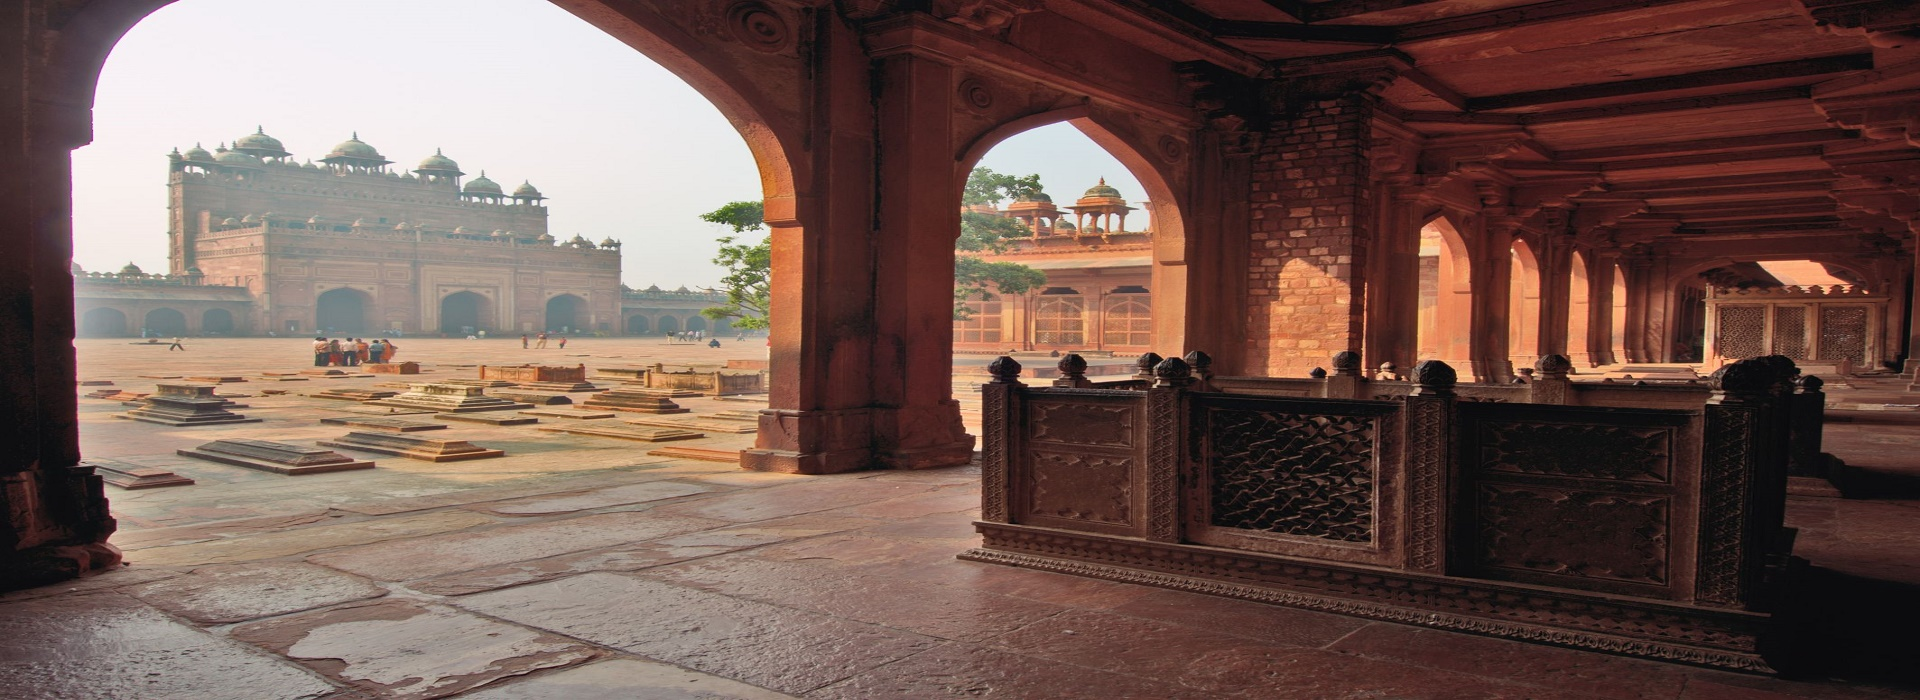 Tips for Planning Fatehpur Sikri Tour